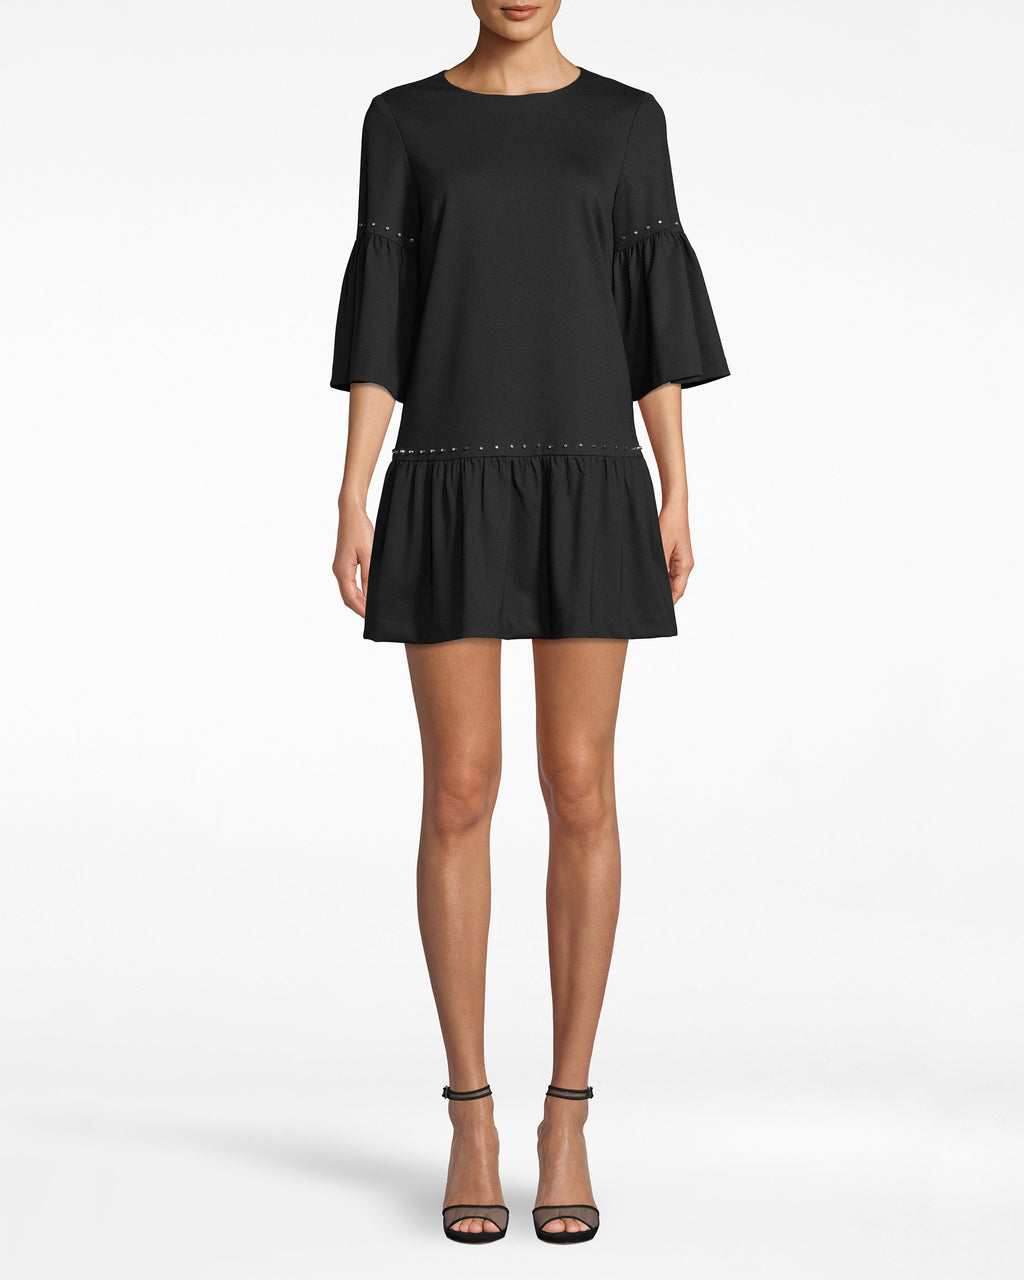 BH20136 - Ponte Nailhead T-Shirt Dress - dresses - short - THIS T-SHIRT DRESS WILL BE ON CONSTANT ROTATION. THE SLEEK DESIGN FEATURES STUDS ON THE SLEEVES AND WAISTLNE, MAKING IT A GO-TO FOR ALMOST ANY OCCASION. DRESS IT UP WITH HEELS OR DOWN WITH SNEAKERS. CONCEALED ZIP DOWN THE BACK.